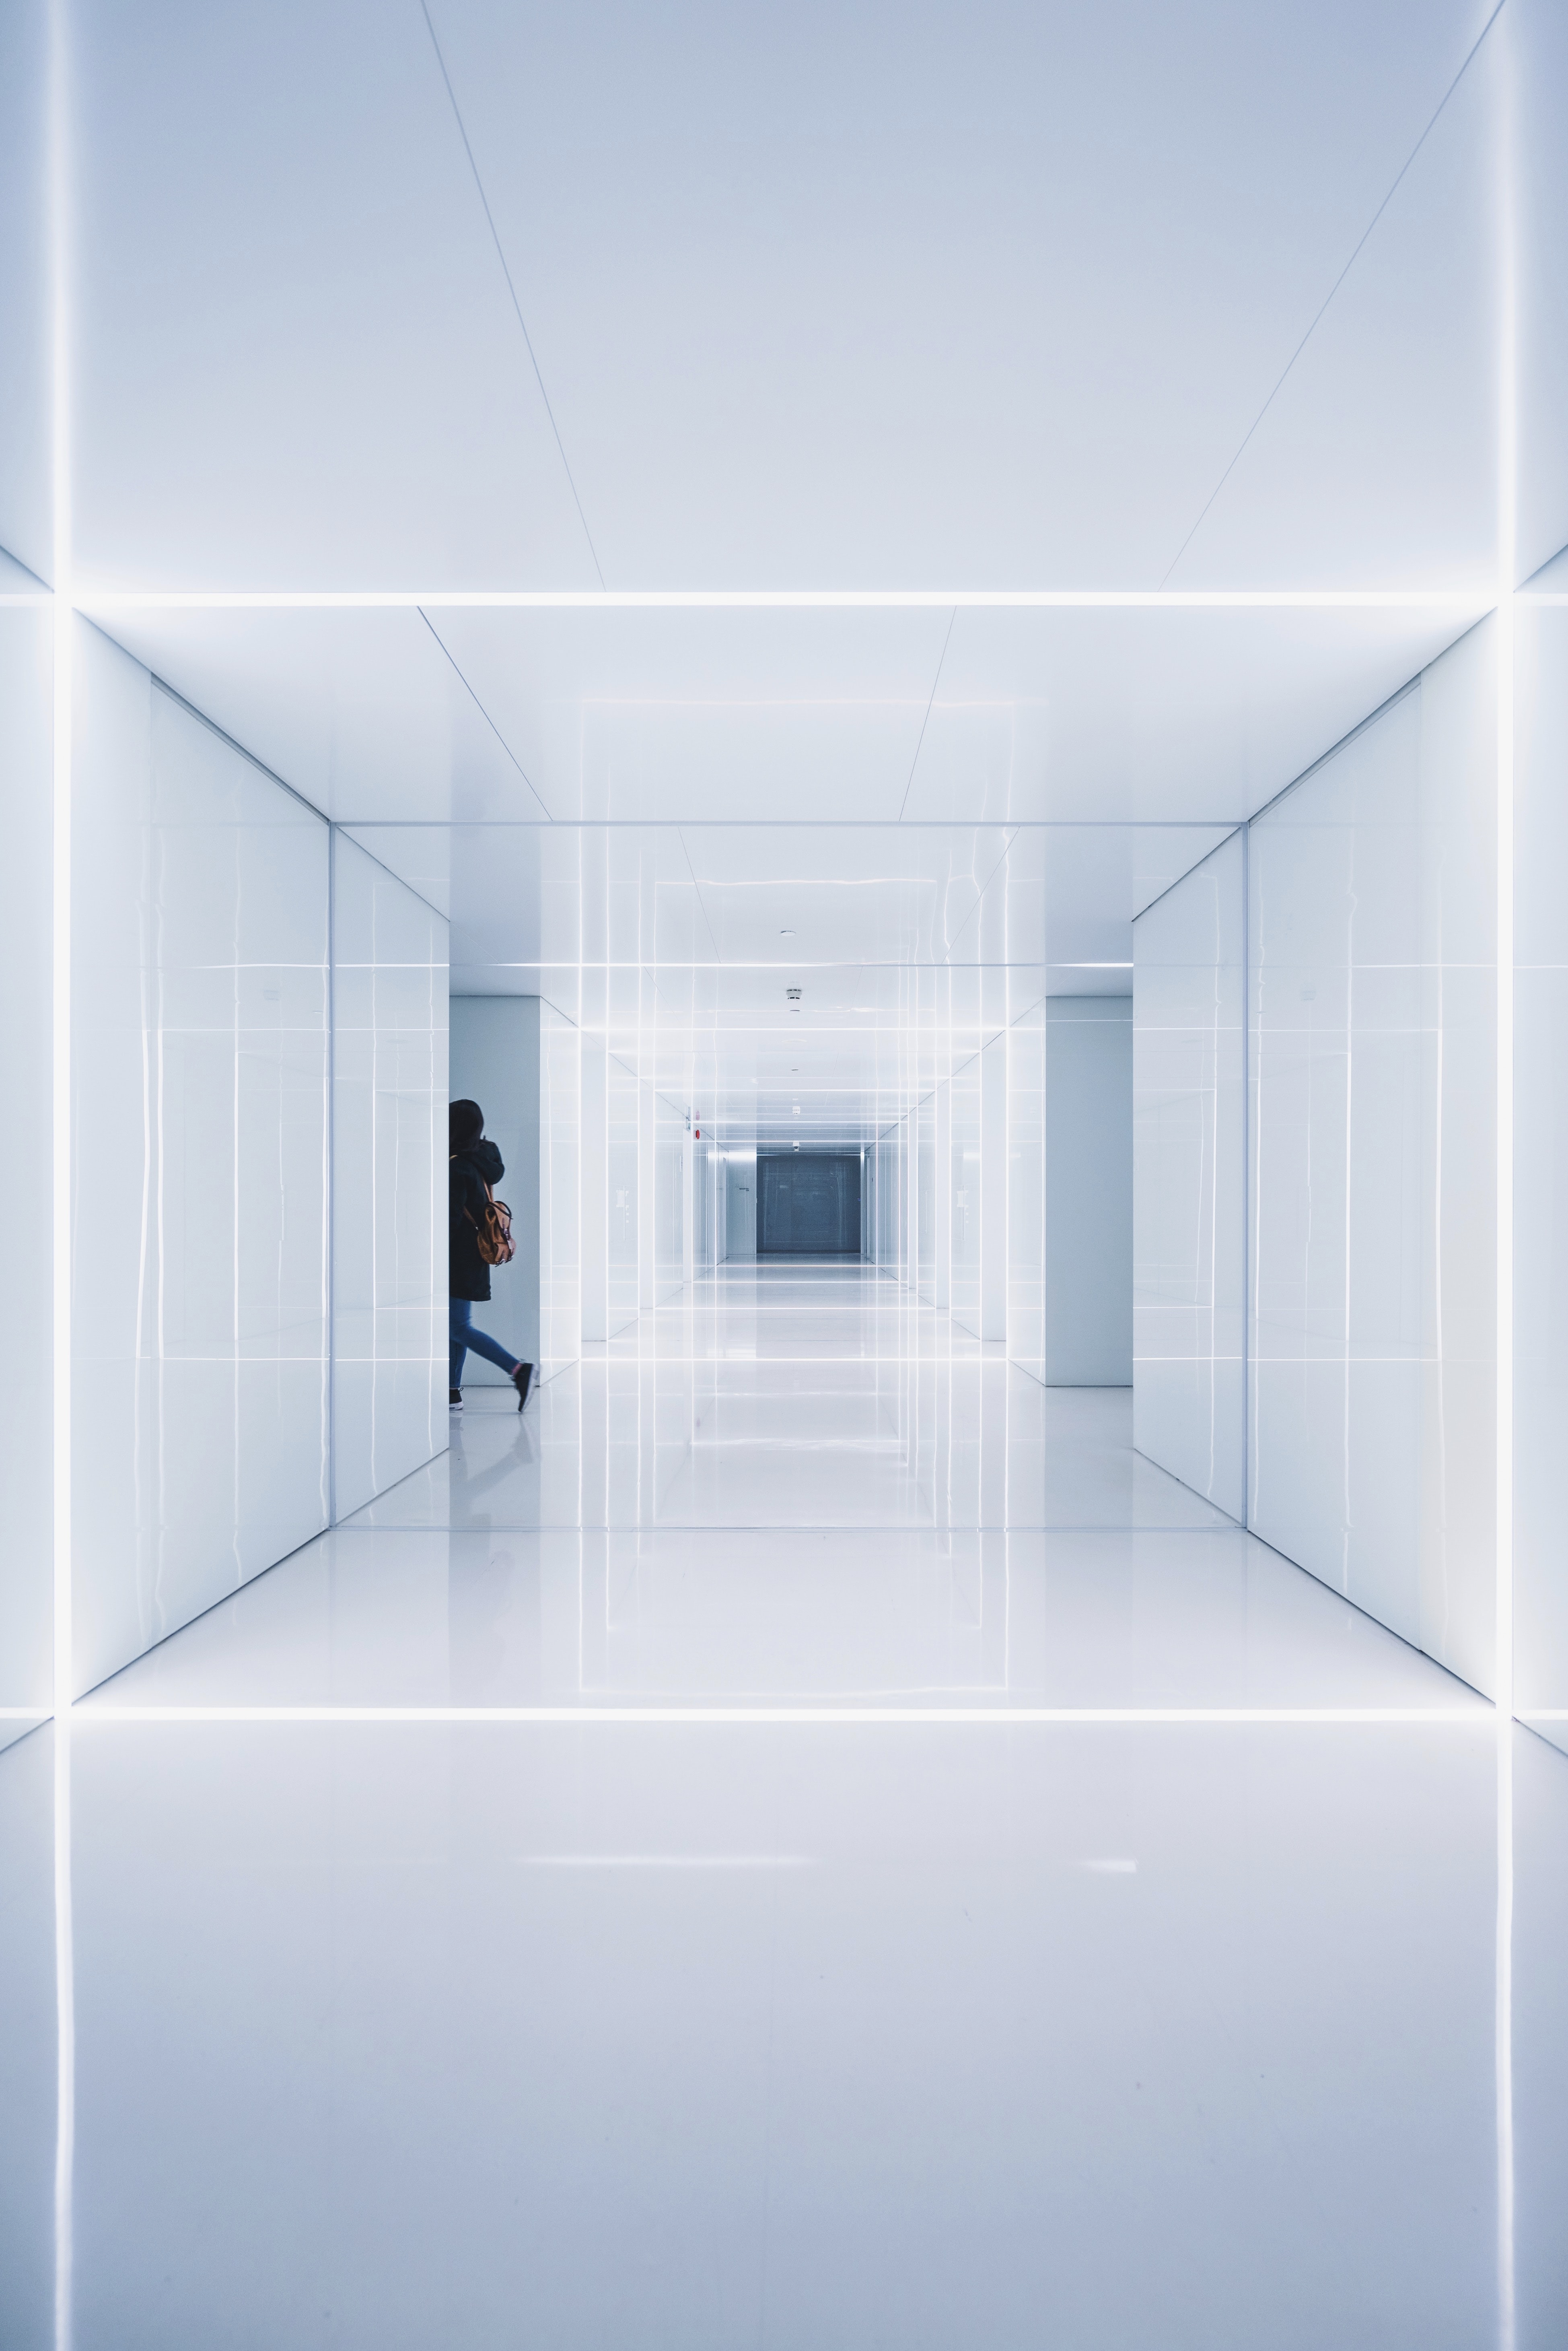 A woman disappearing behind a corner in a glossy white corridor